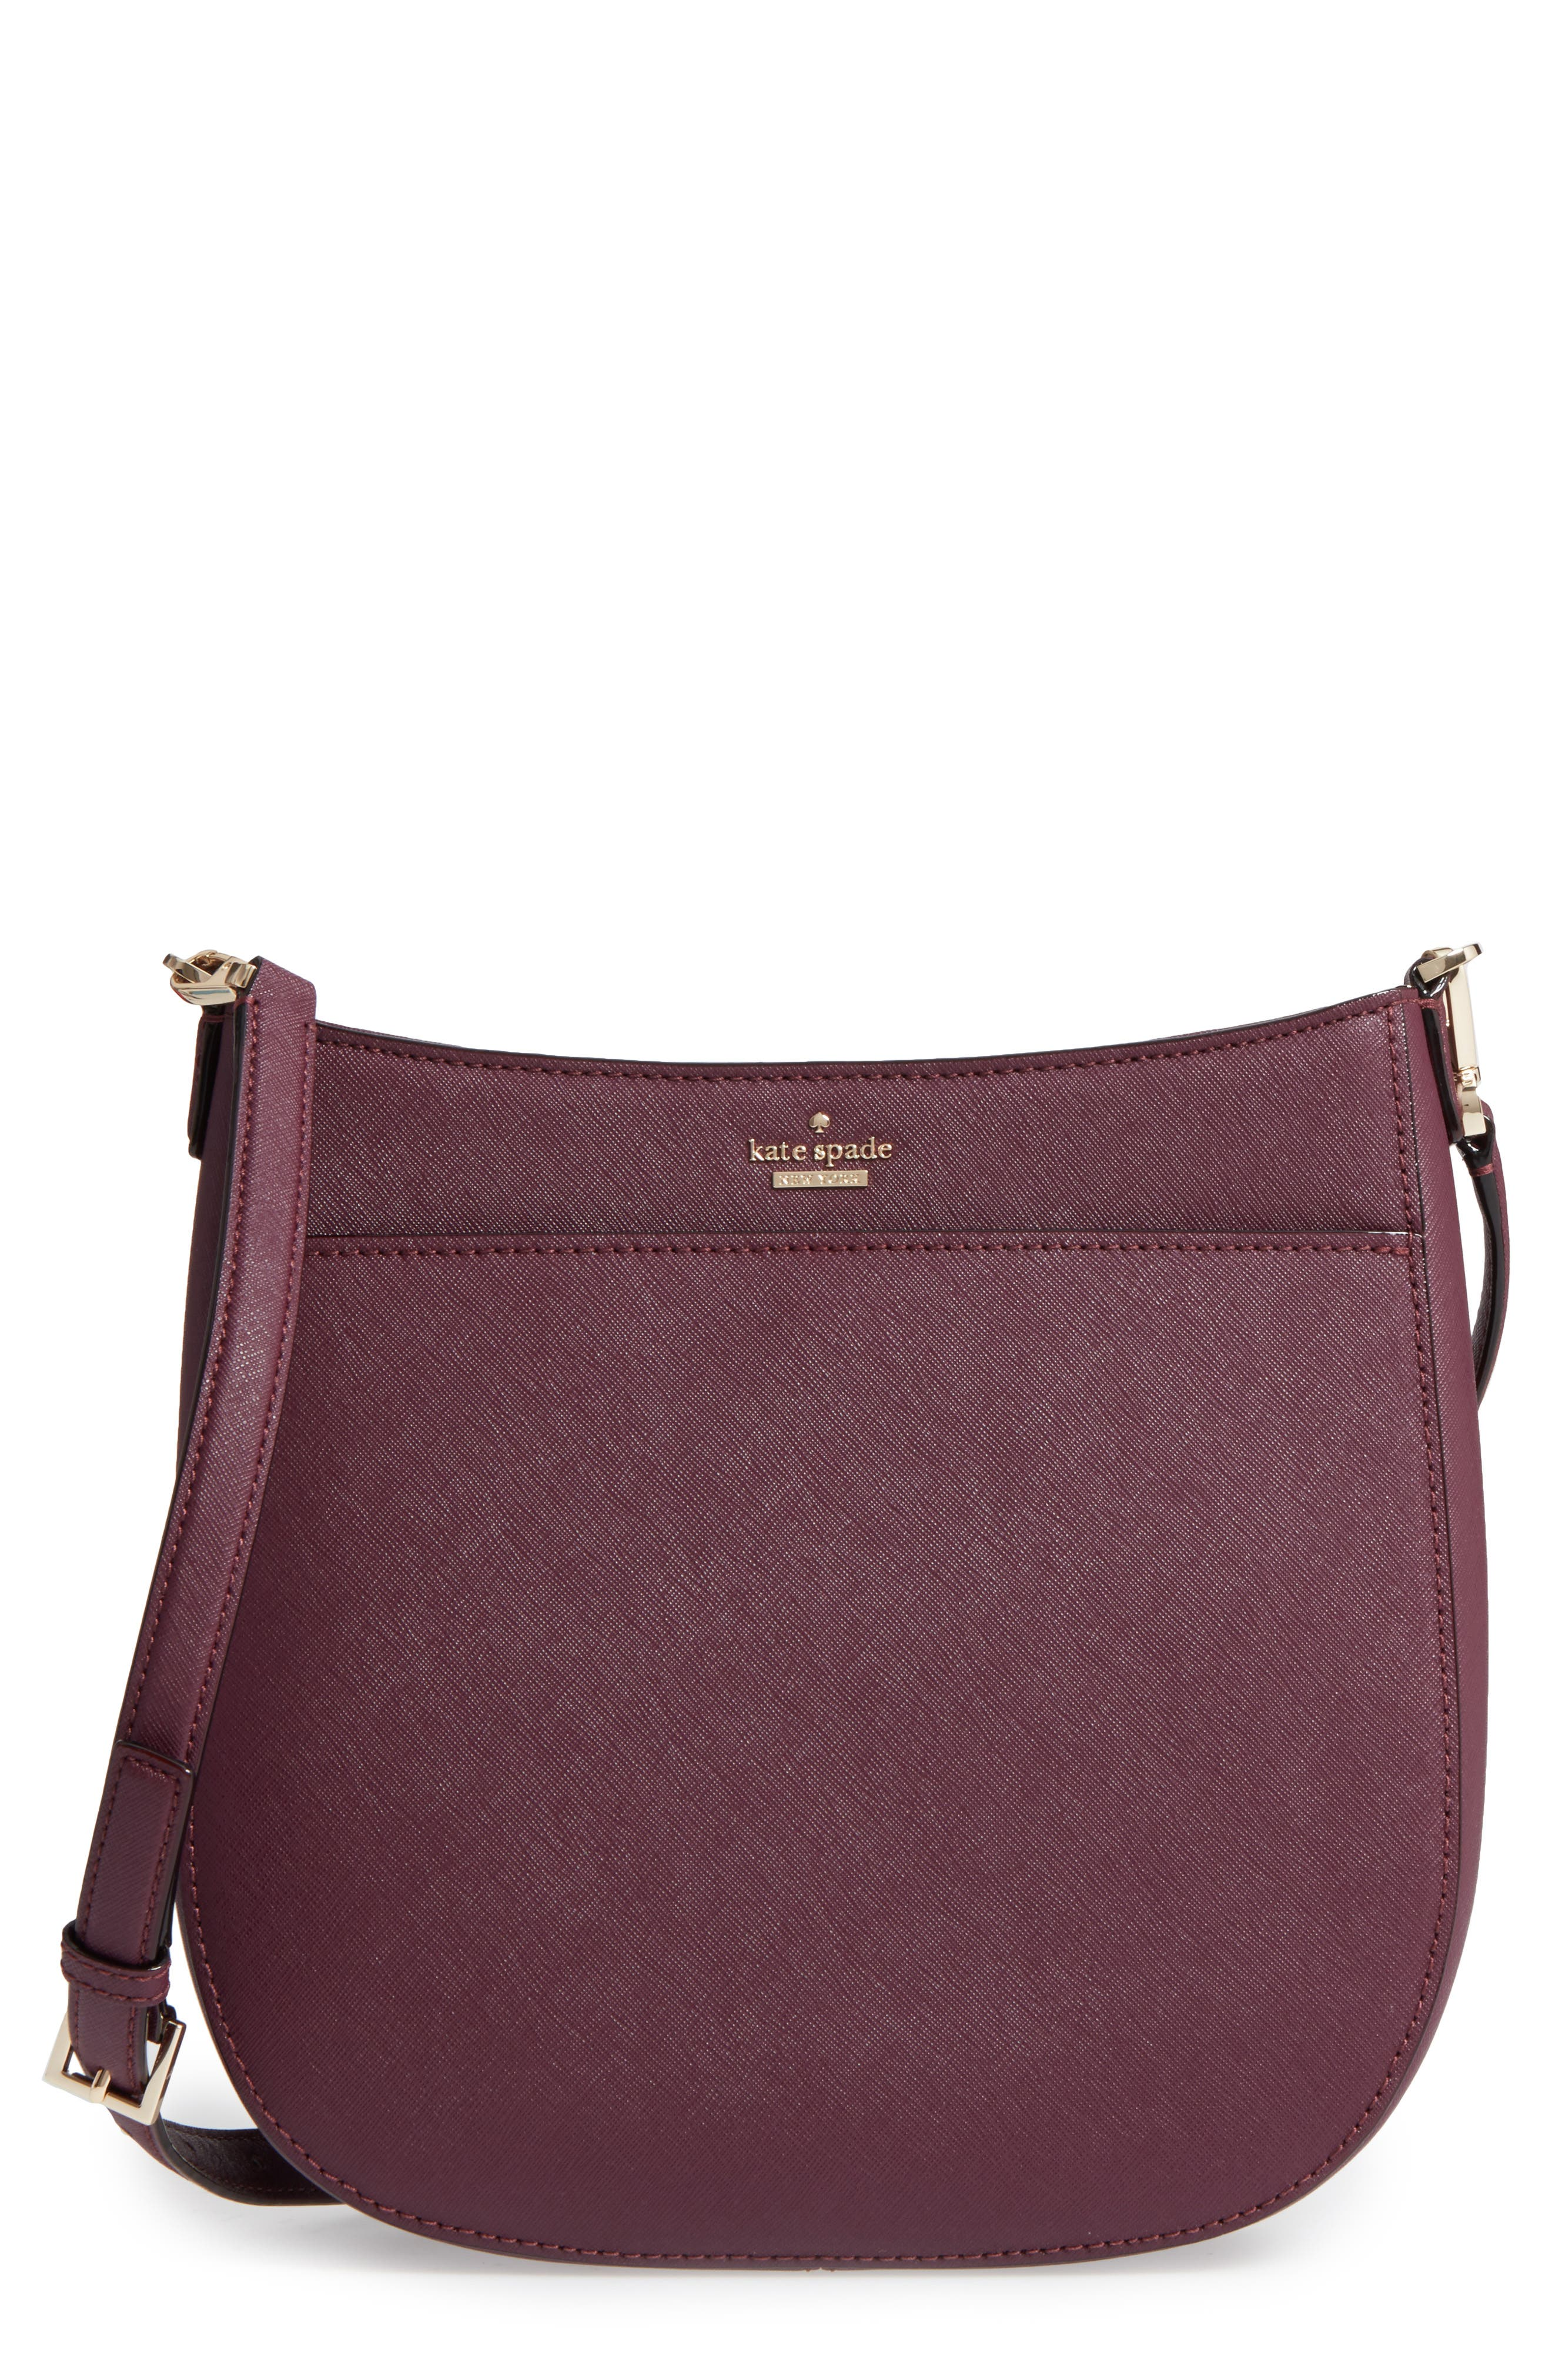 KATE SPADE NEW YORK cameron street - robin leather crossbody bag